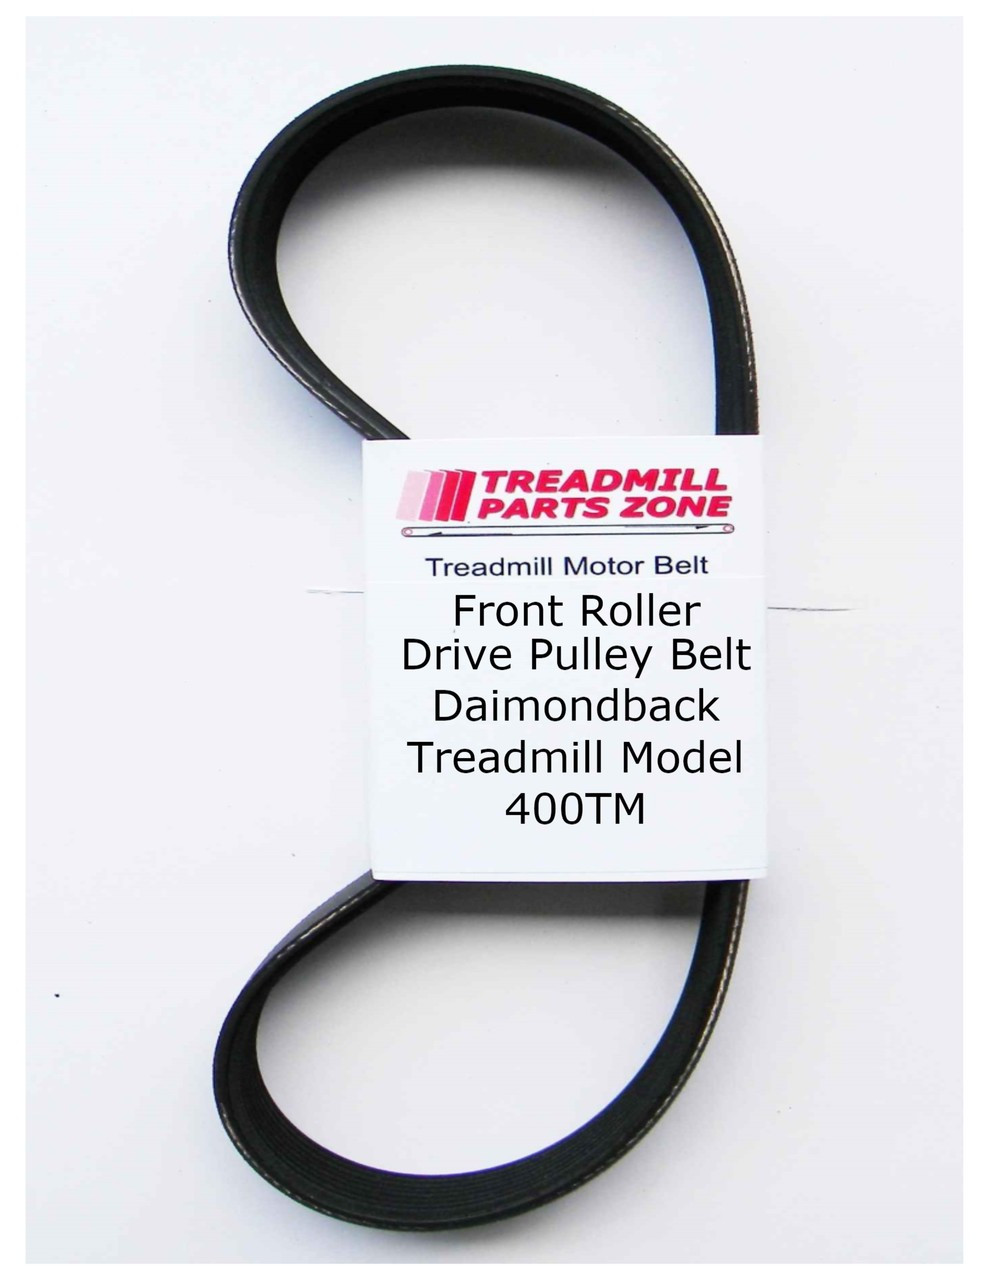 DiamondBack Treadmill Motor Belt Model 400TM